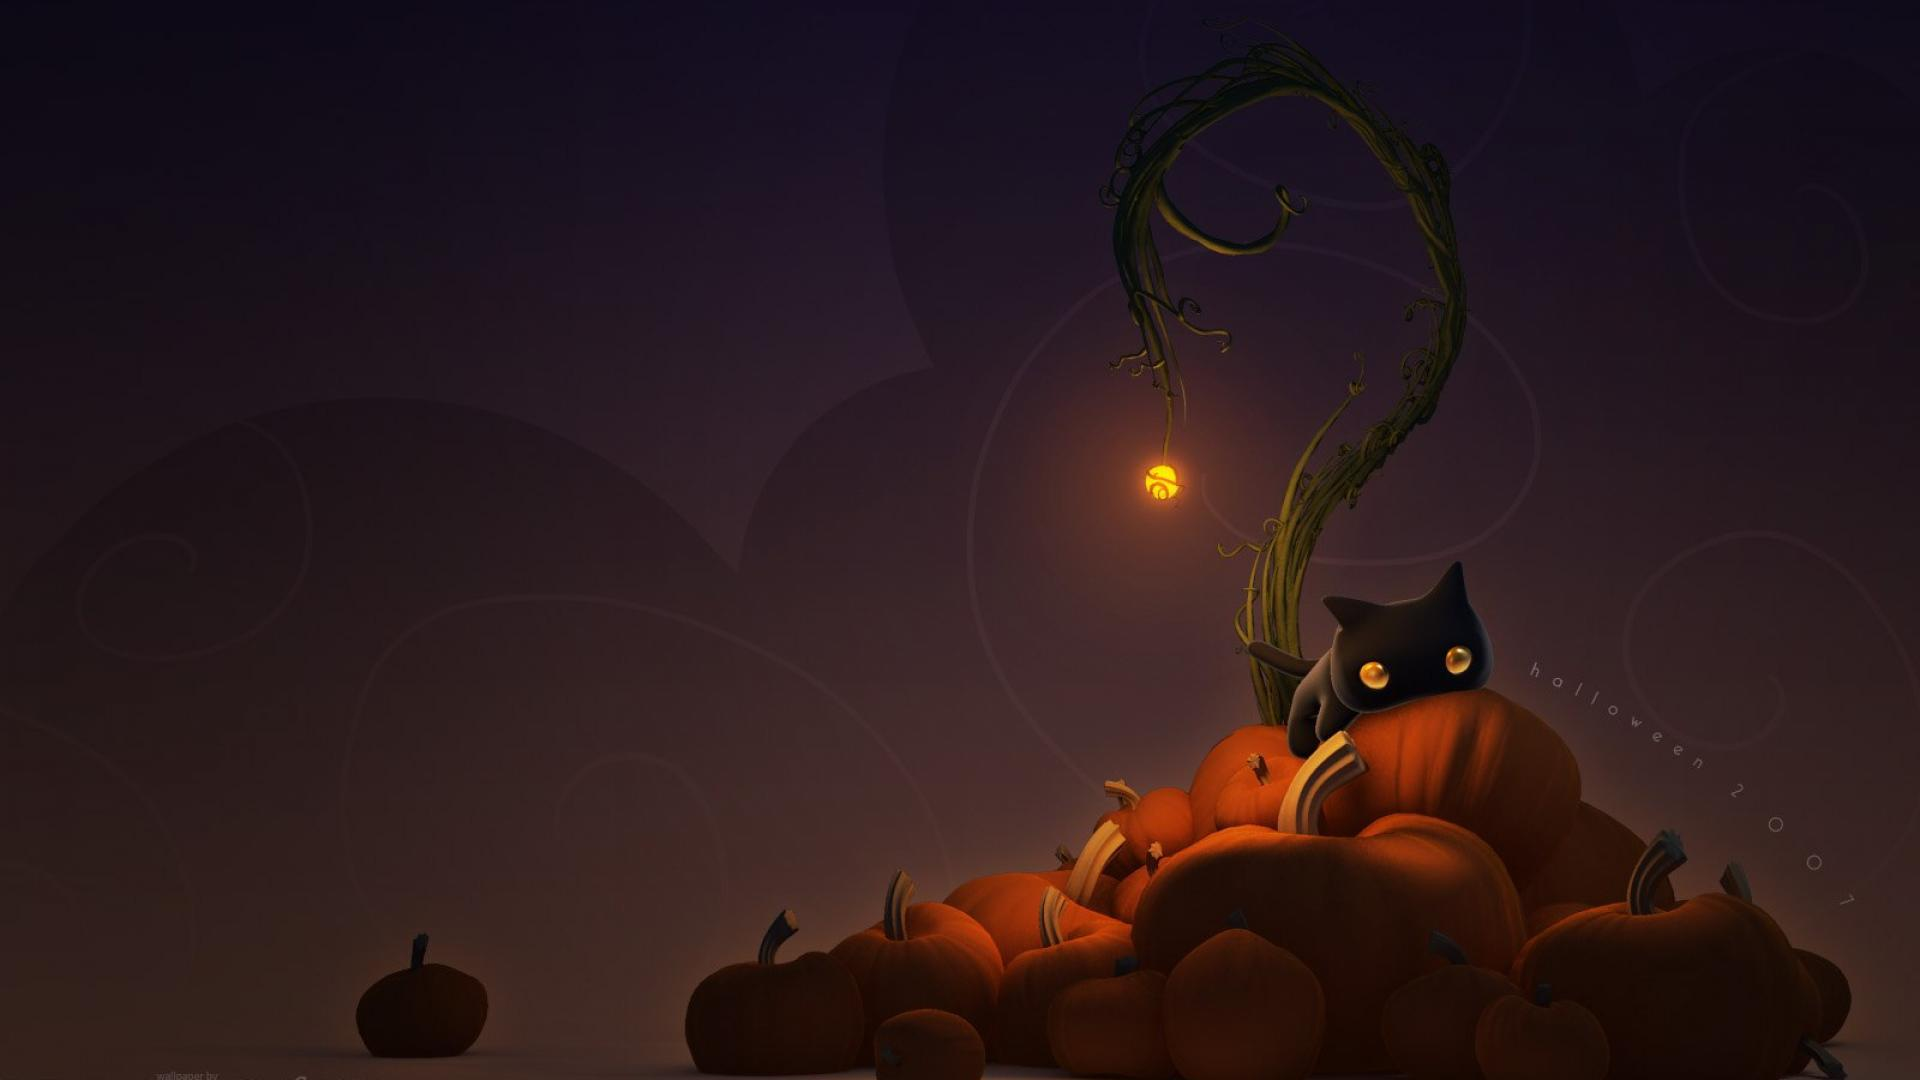 Cute halloween desktop wallpaper SF